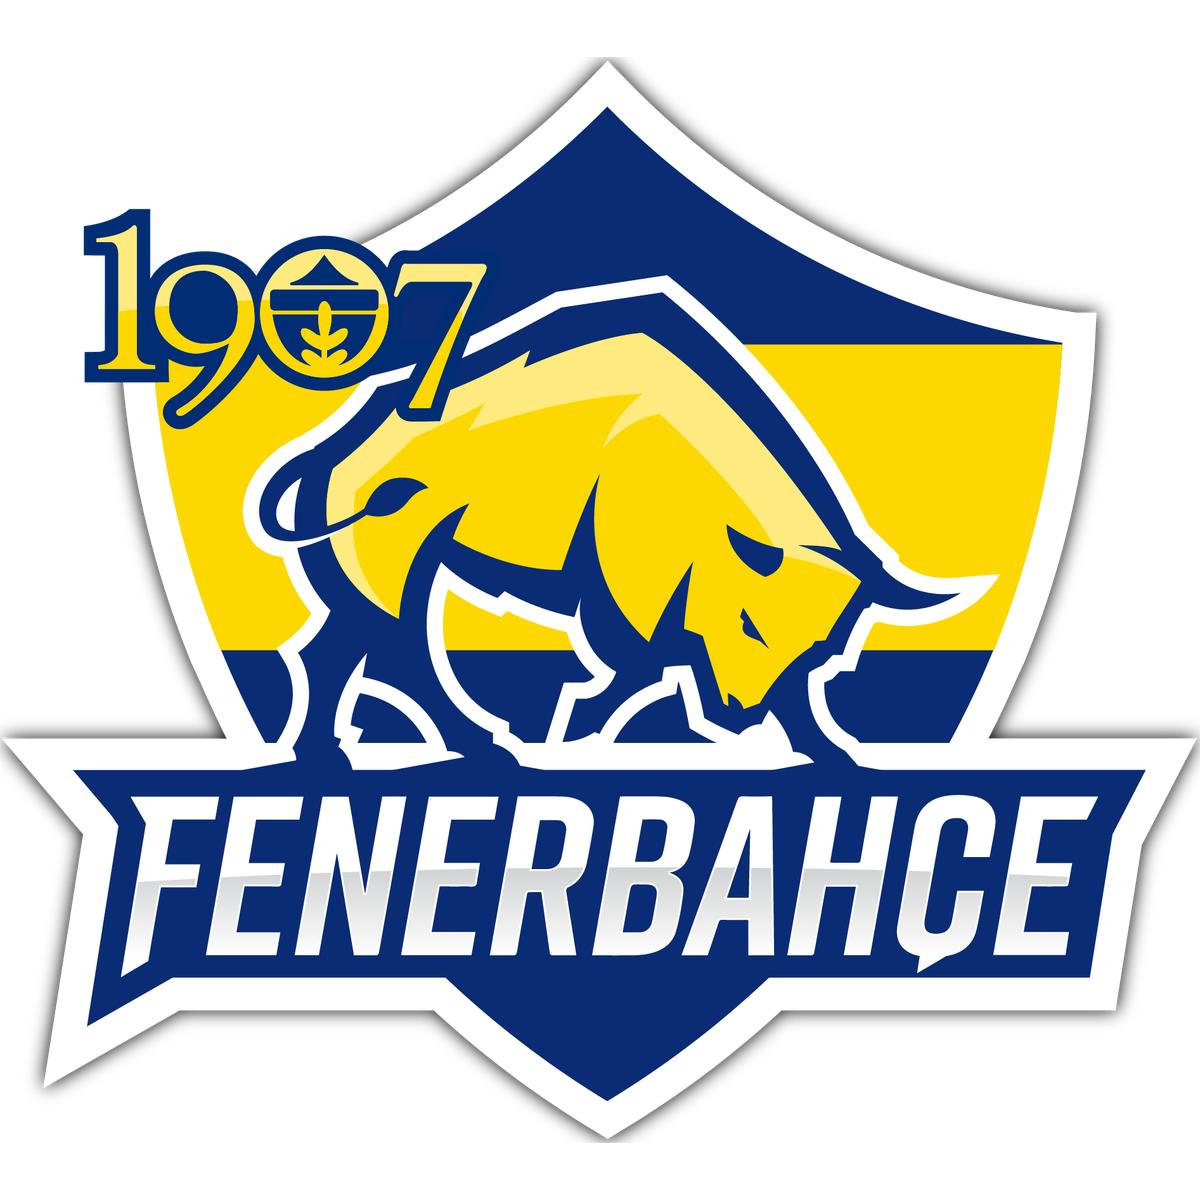 1907 Fenerbahçe Esports League of Legends Team